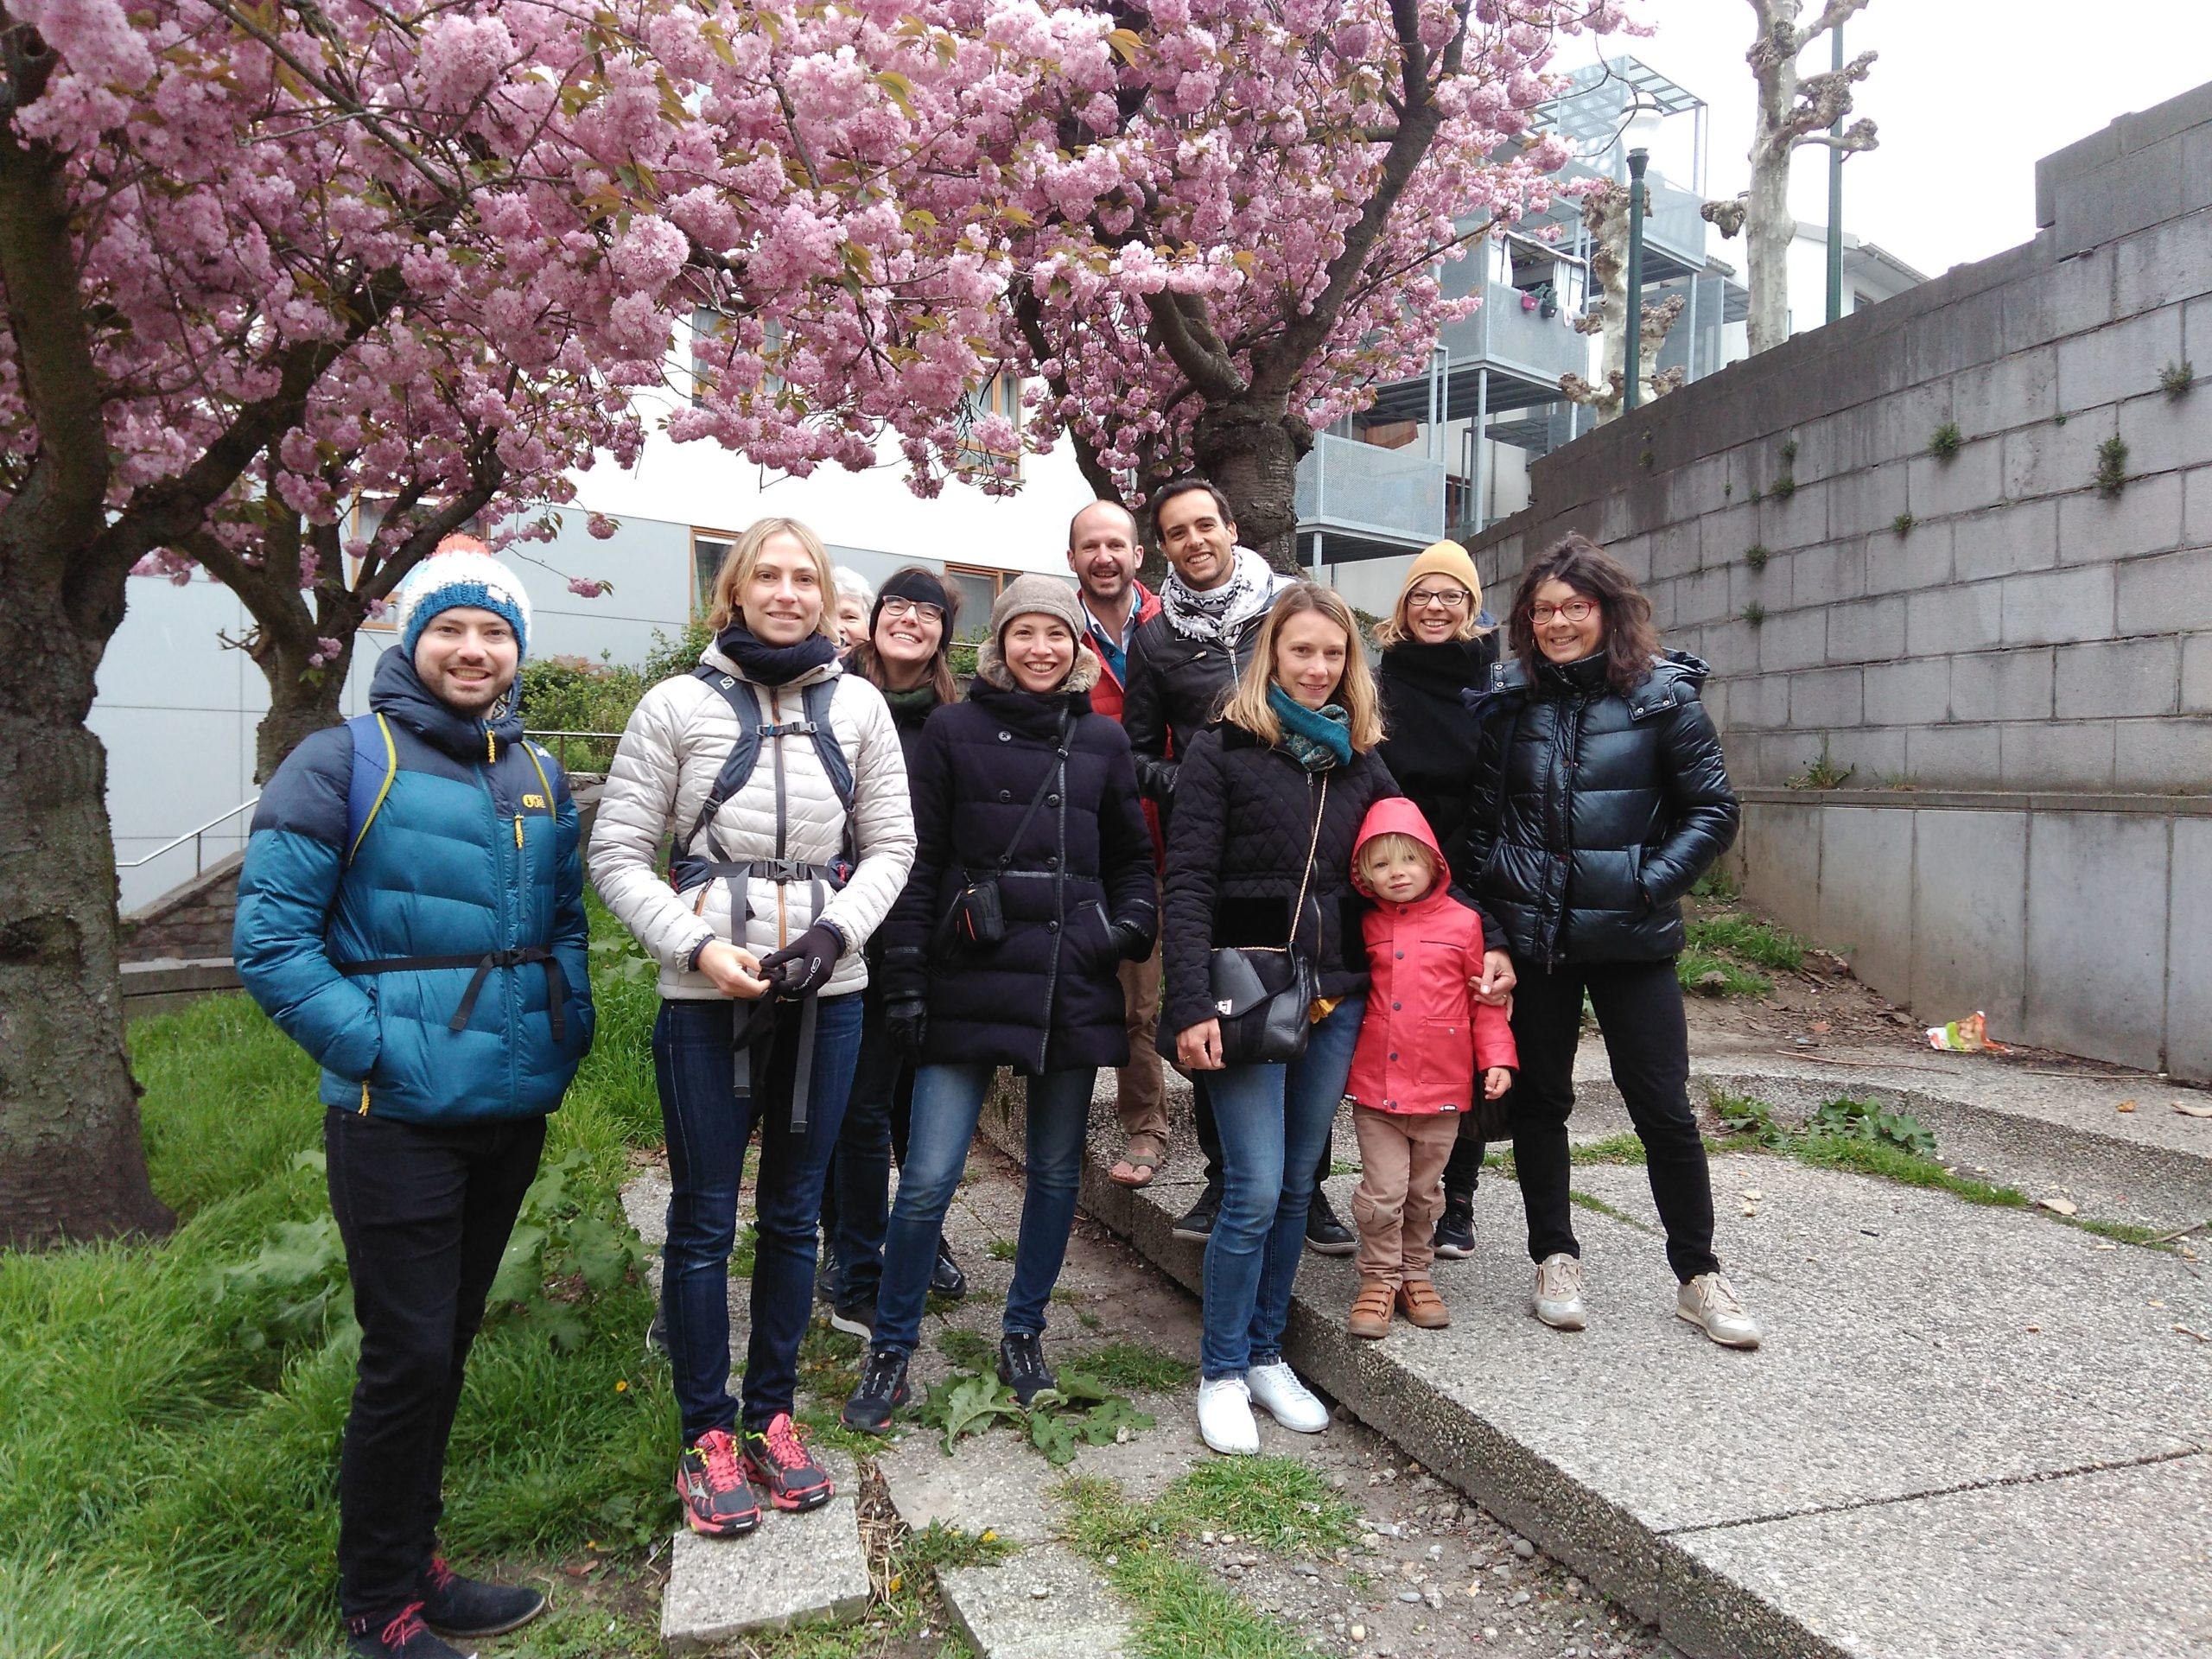 Group in front of the monument to the living in the Marolles during a visit to Brussels 1000 years of struggles of Brussels By Foot.